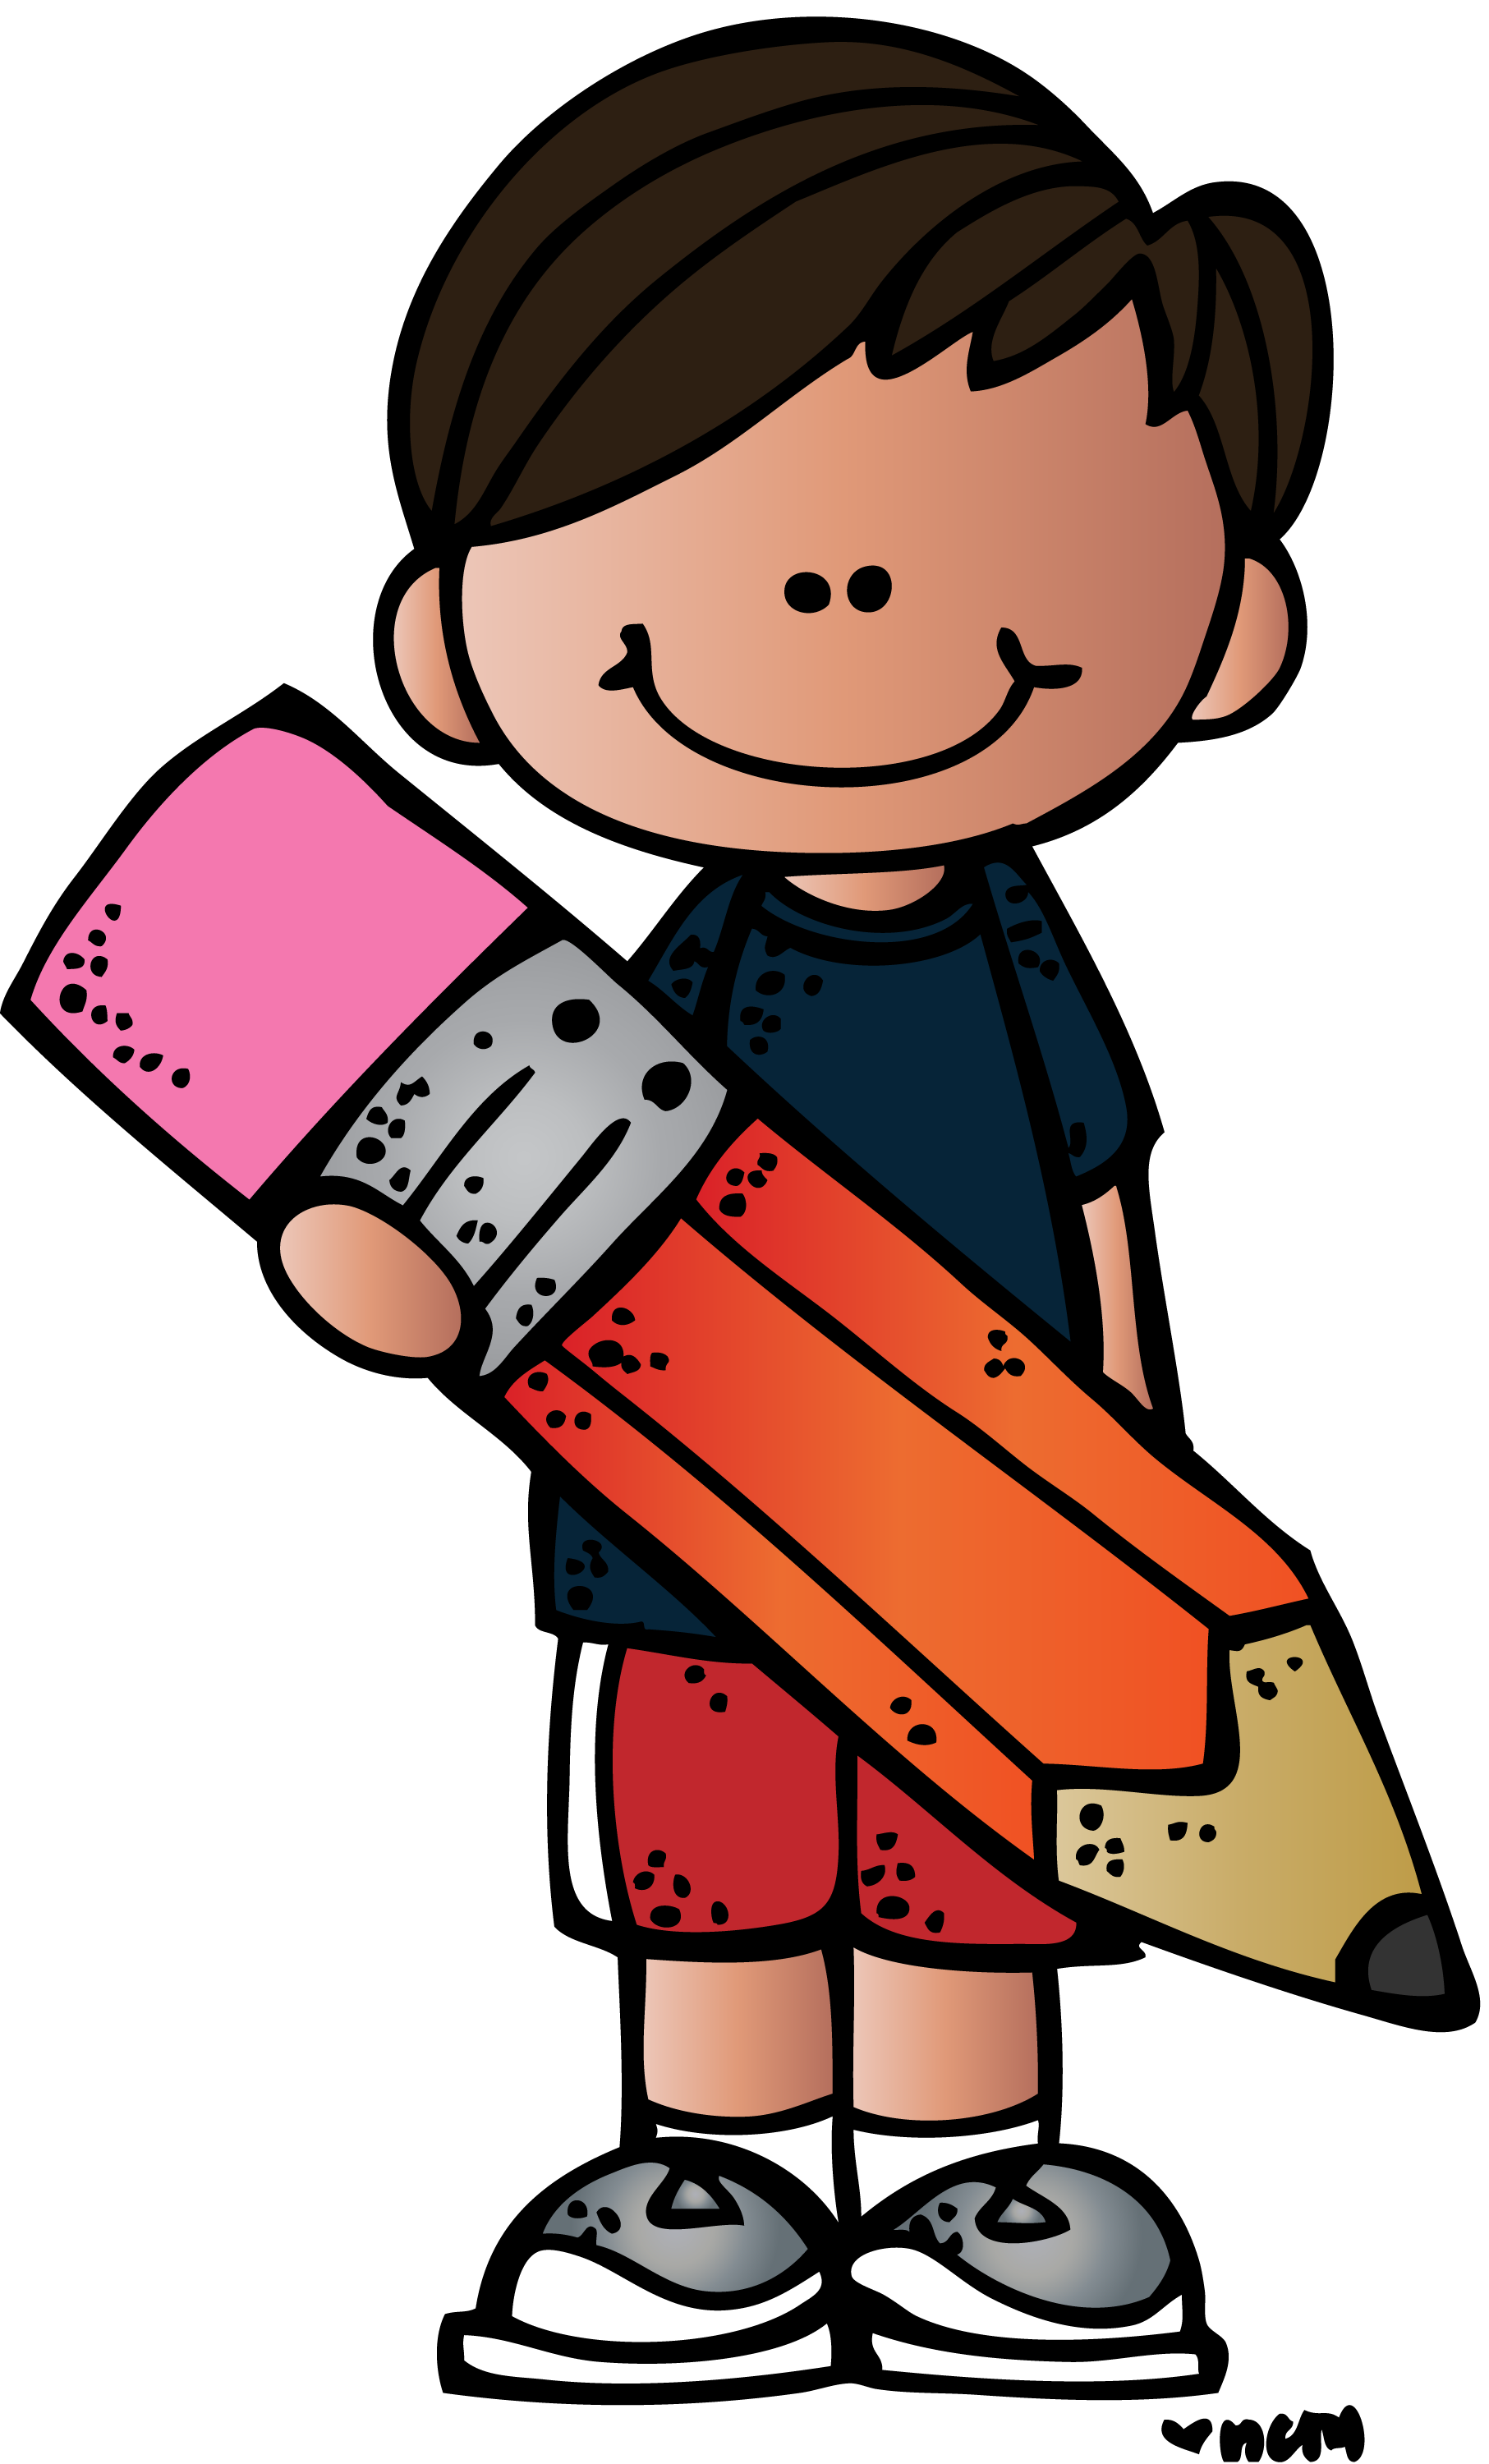 Pencils clipart student.  collection of melonheadz